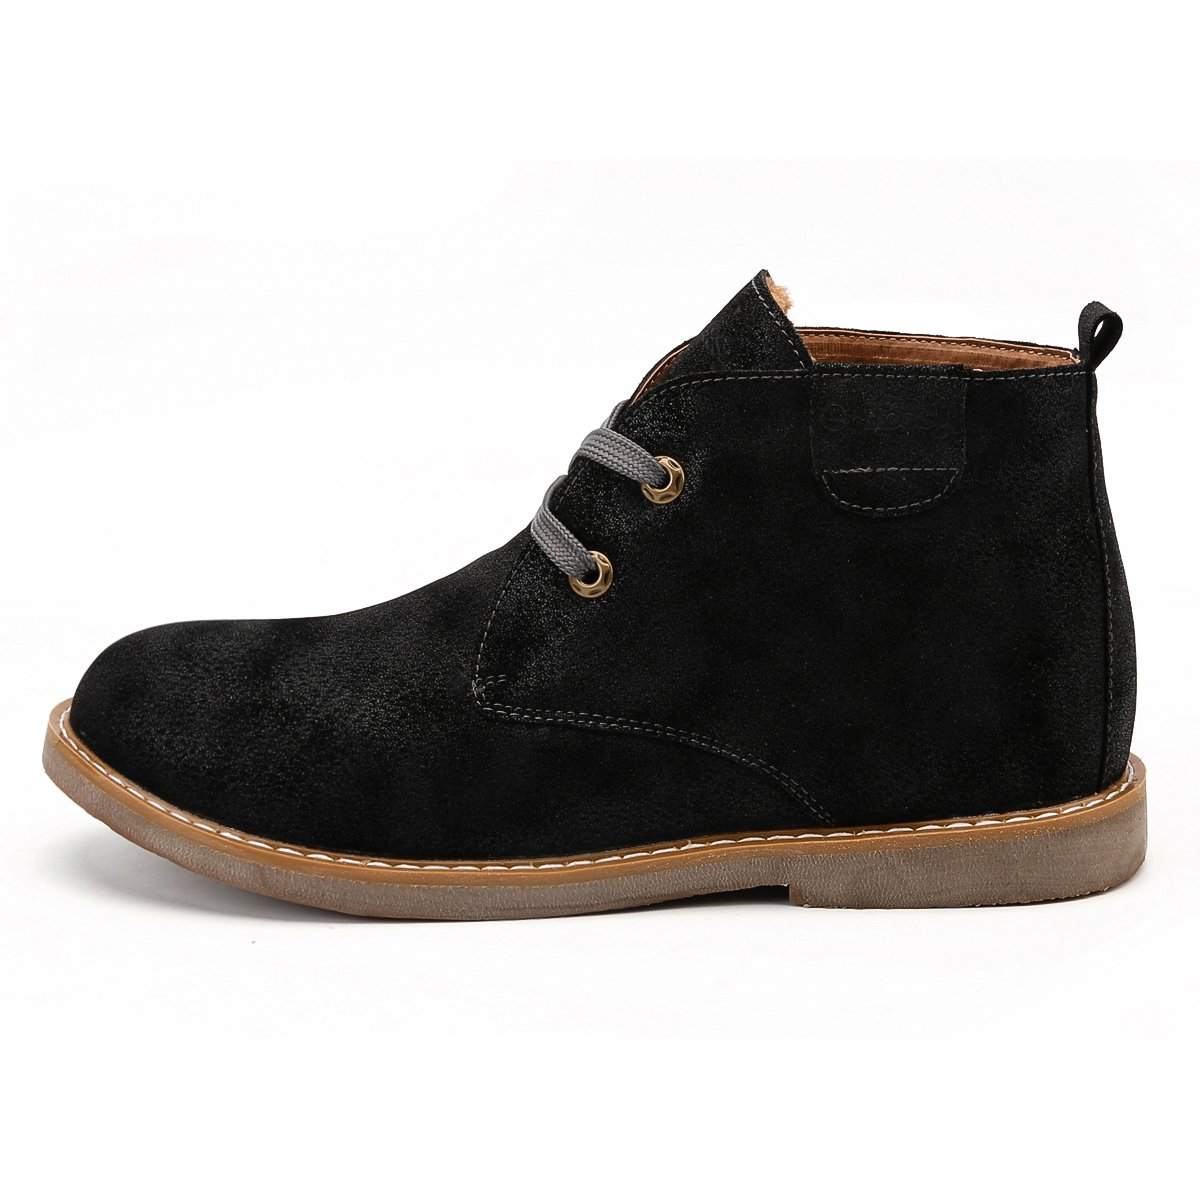 Amazon.com   gracosy Desert Boot for Men, Winter Chukka Boot Lace Up Ankle Boots Fashion Casual Shoes   Chukka